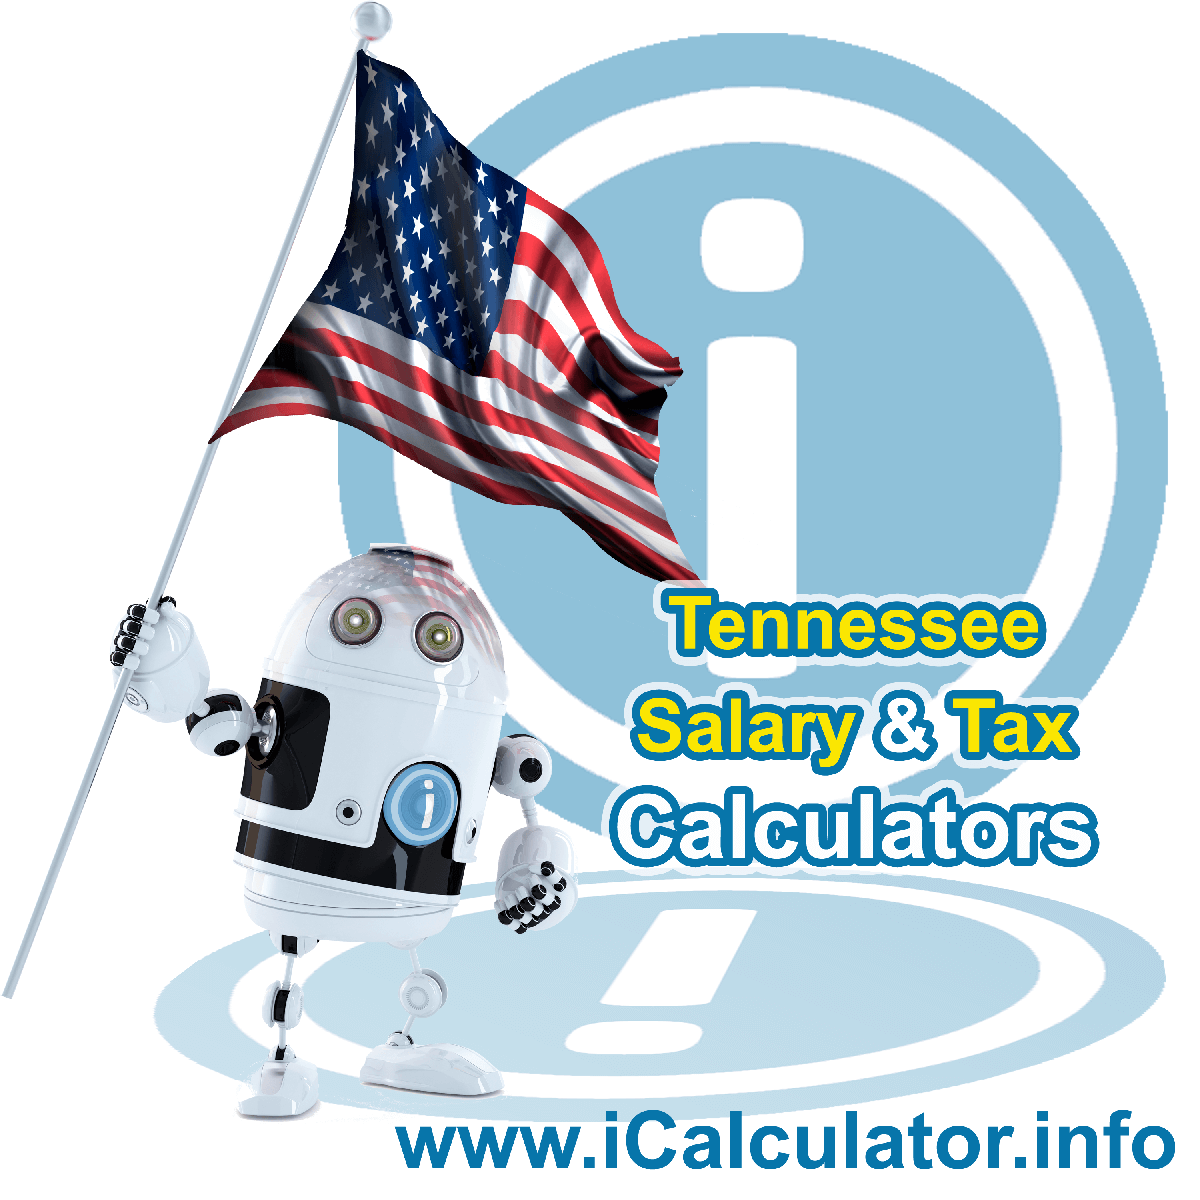 Tennessee Salary Calculator 2020 | iCalculator | The Tennessee Salary Calculator allows you to quickly calculate your salary after tax including Tennessee State Tax, Federal State Tax, Medicare Deductions, Social Security, Capital Gains and other income tax and salary deductions complete with supporting Tennessee state tax tables